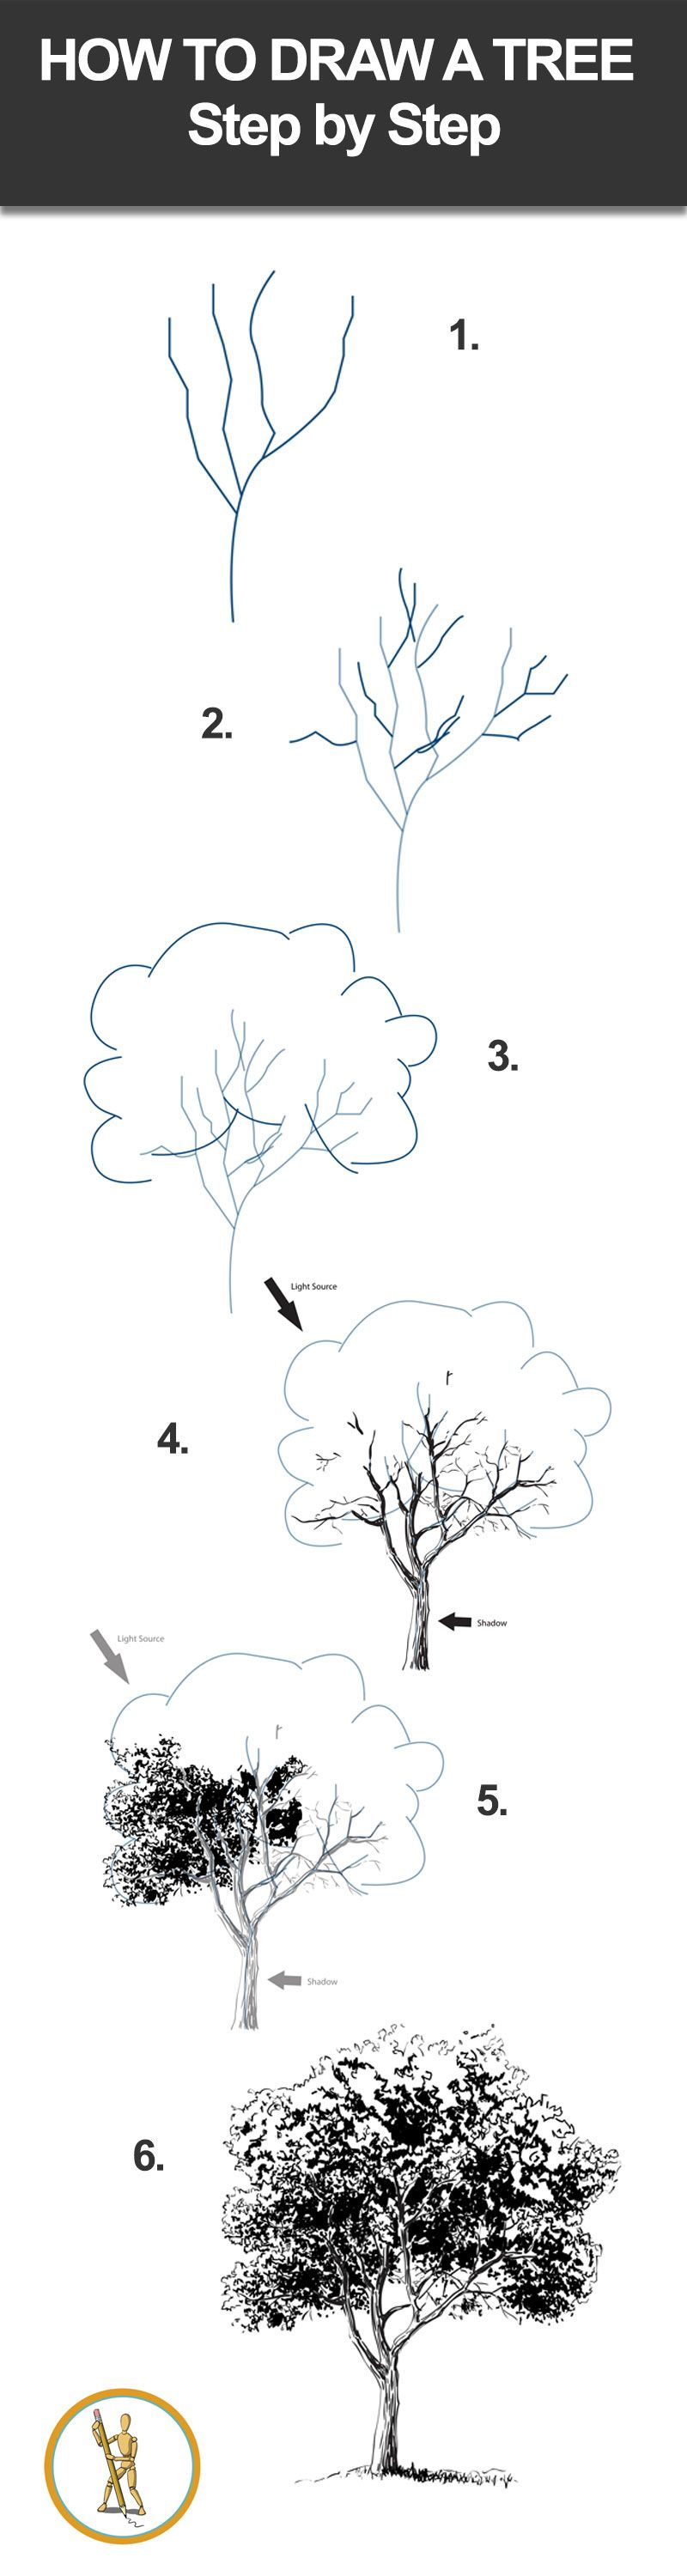 How To Draw A Tree Step By Step #drawinglessons